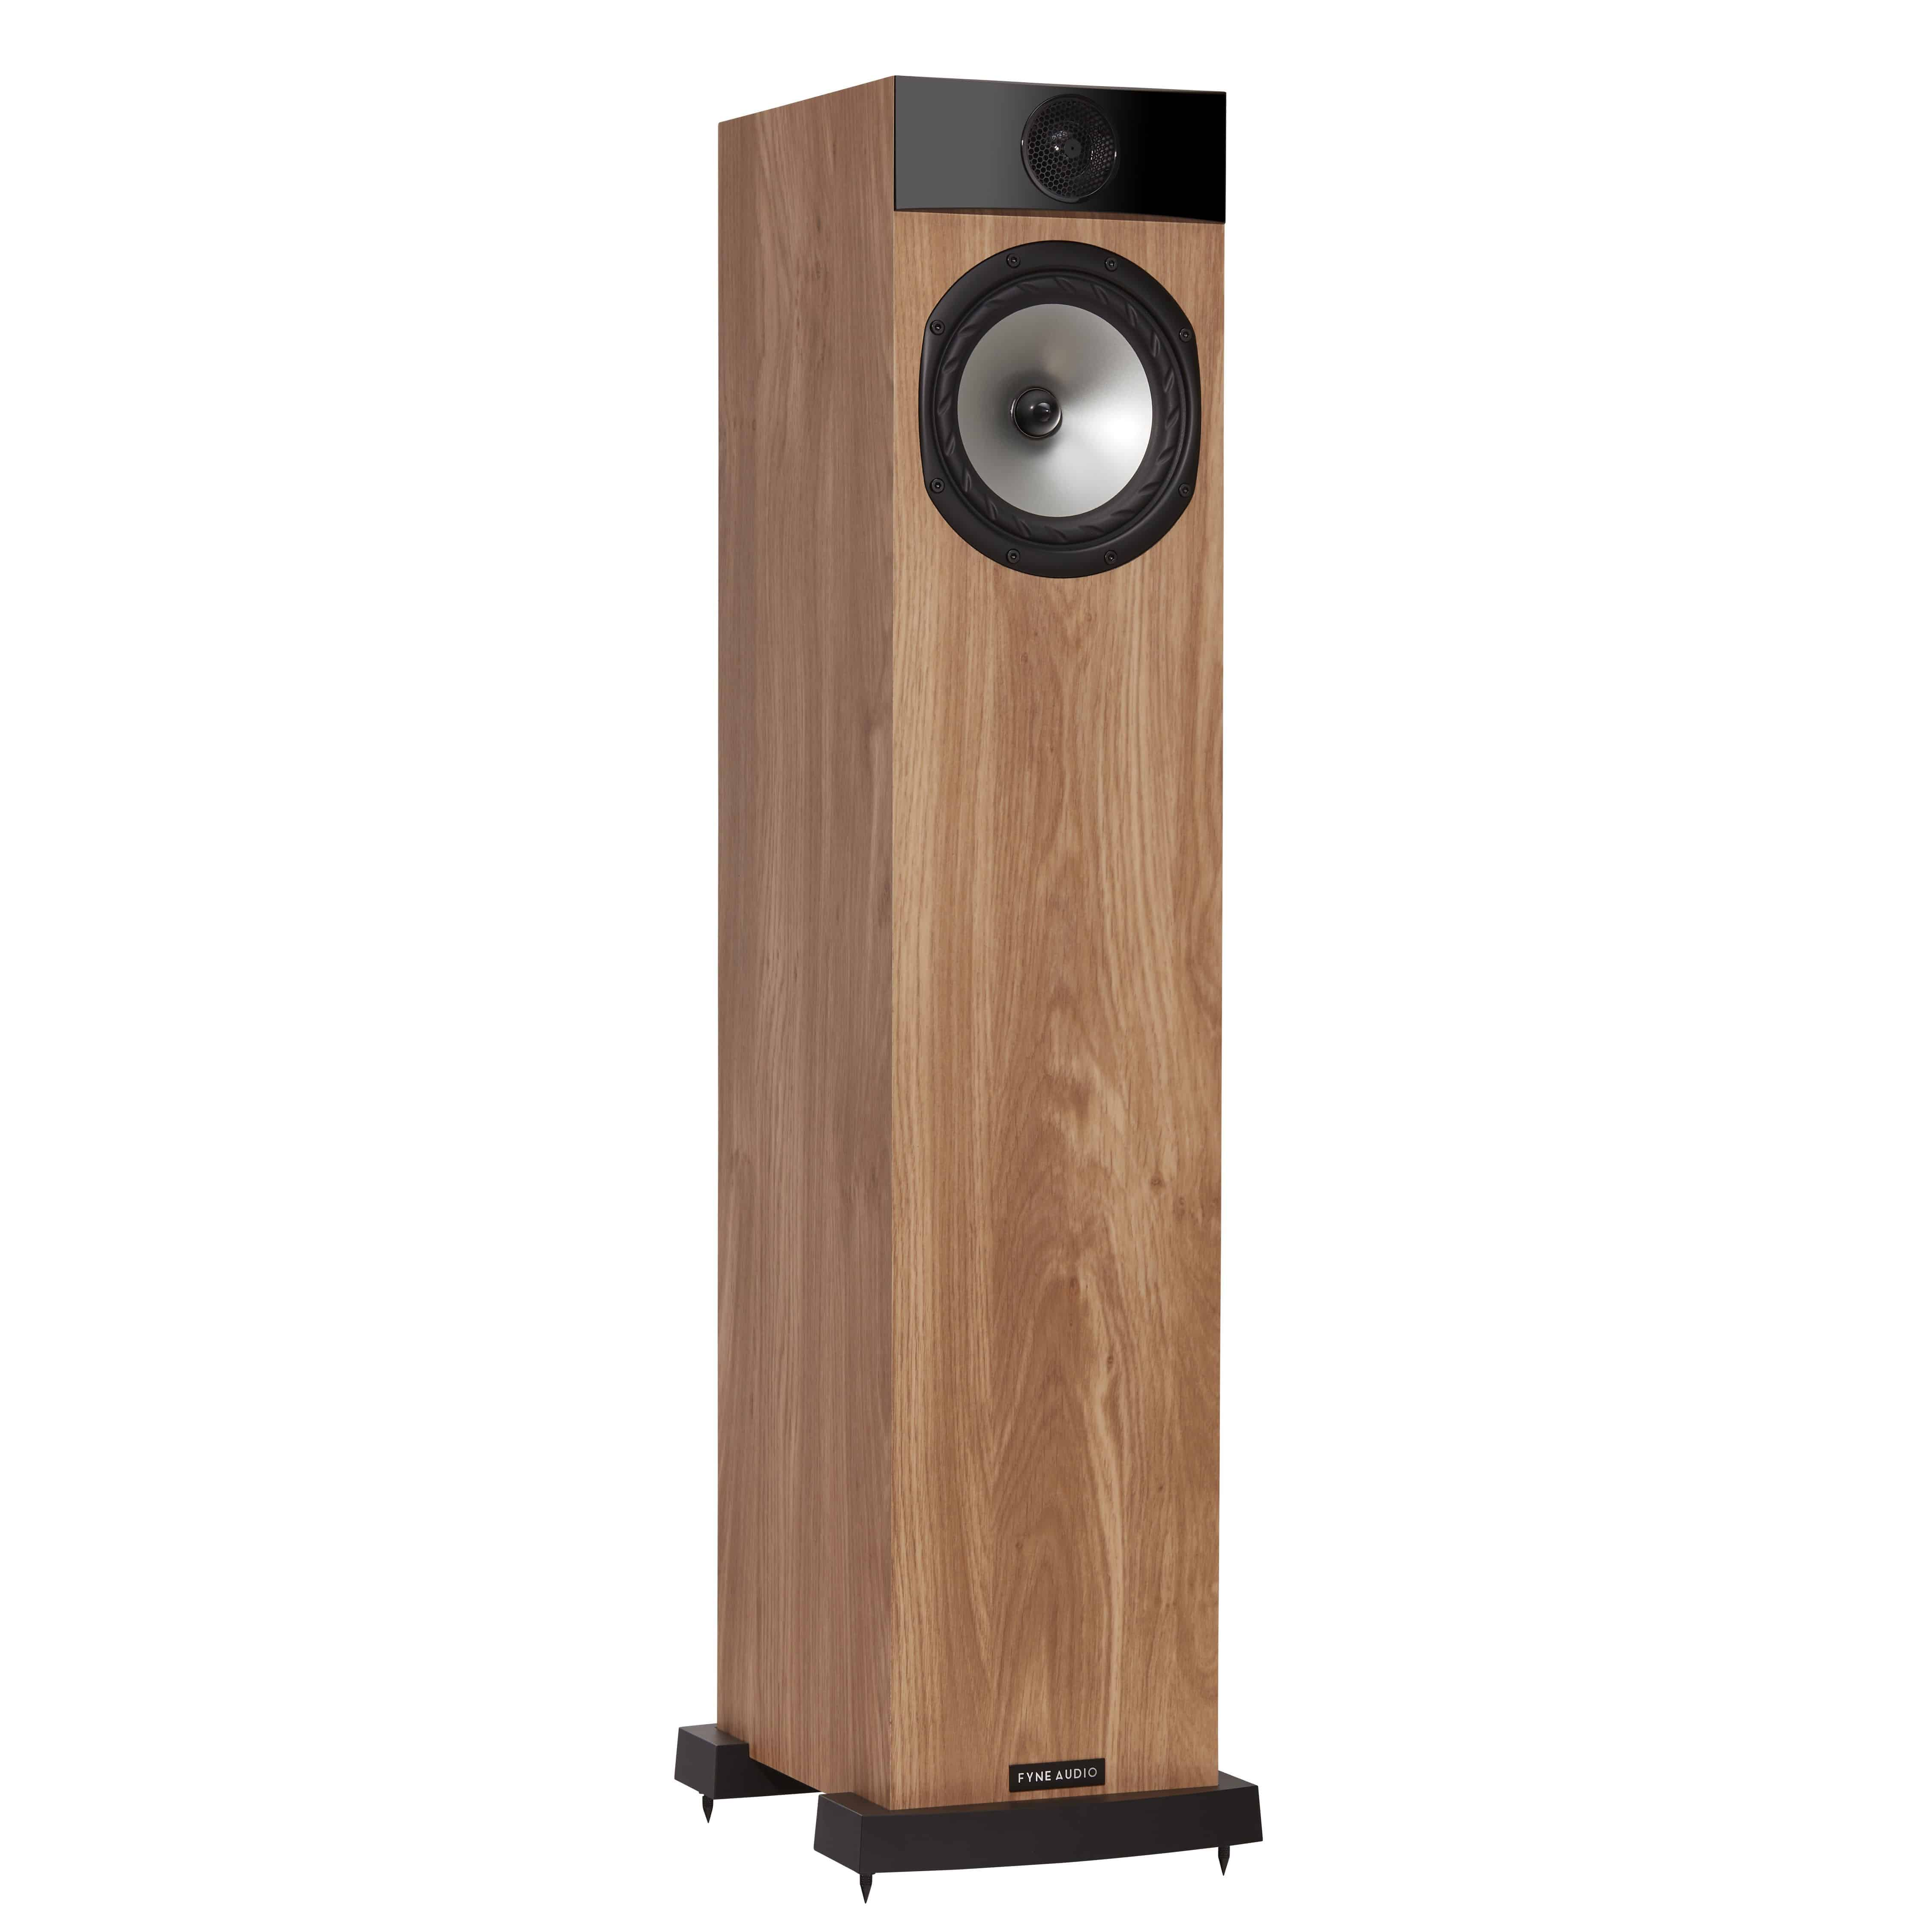 Fyne Audio F302 Floor Standing Speaker System Audio Geeks